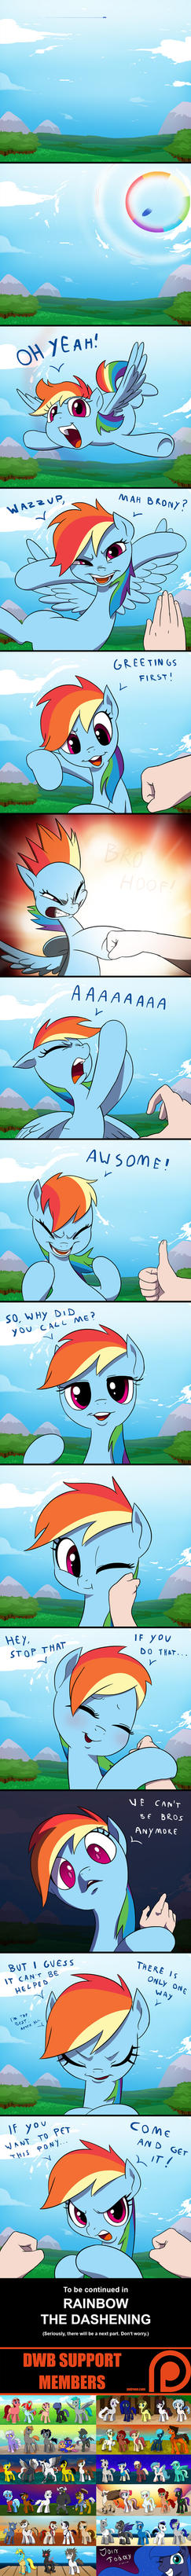 Rainbow Dash Simulator Part 1 by doubleWbrothers